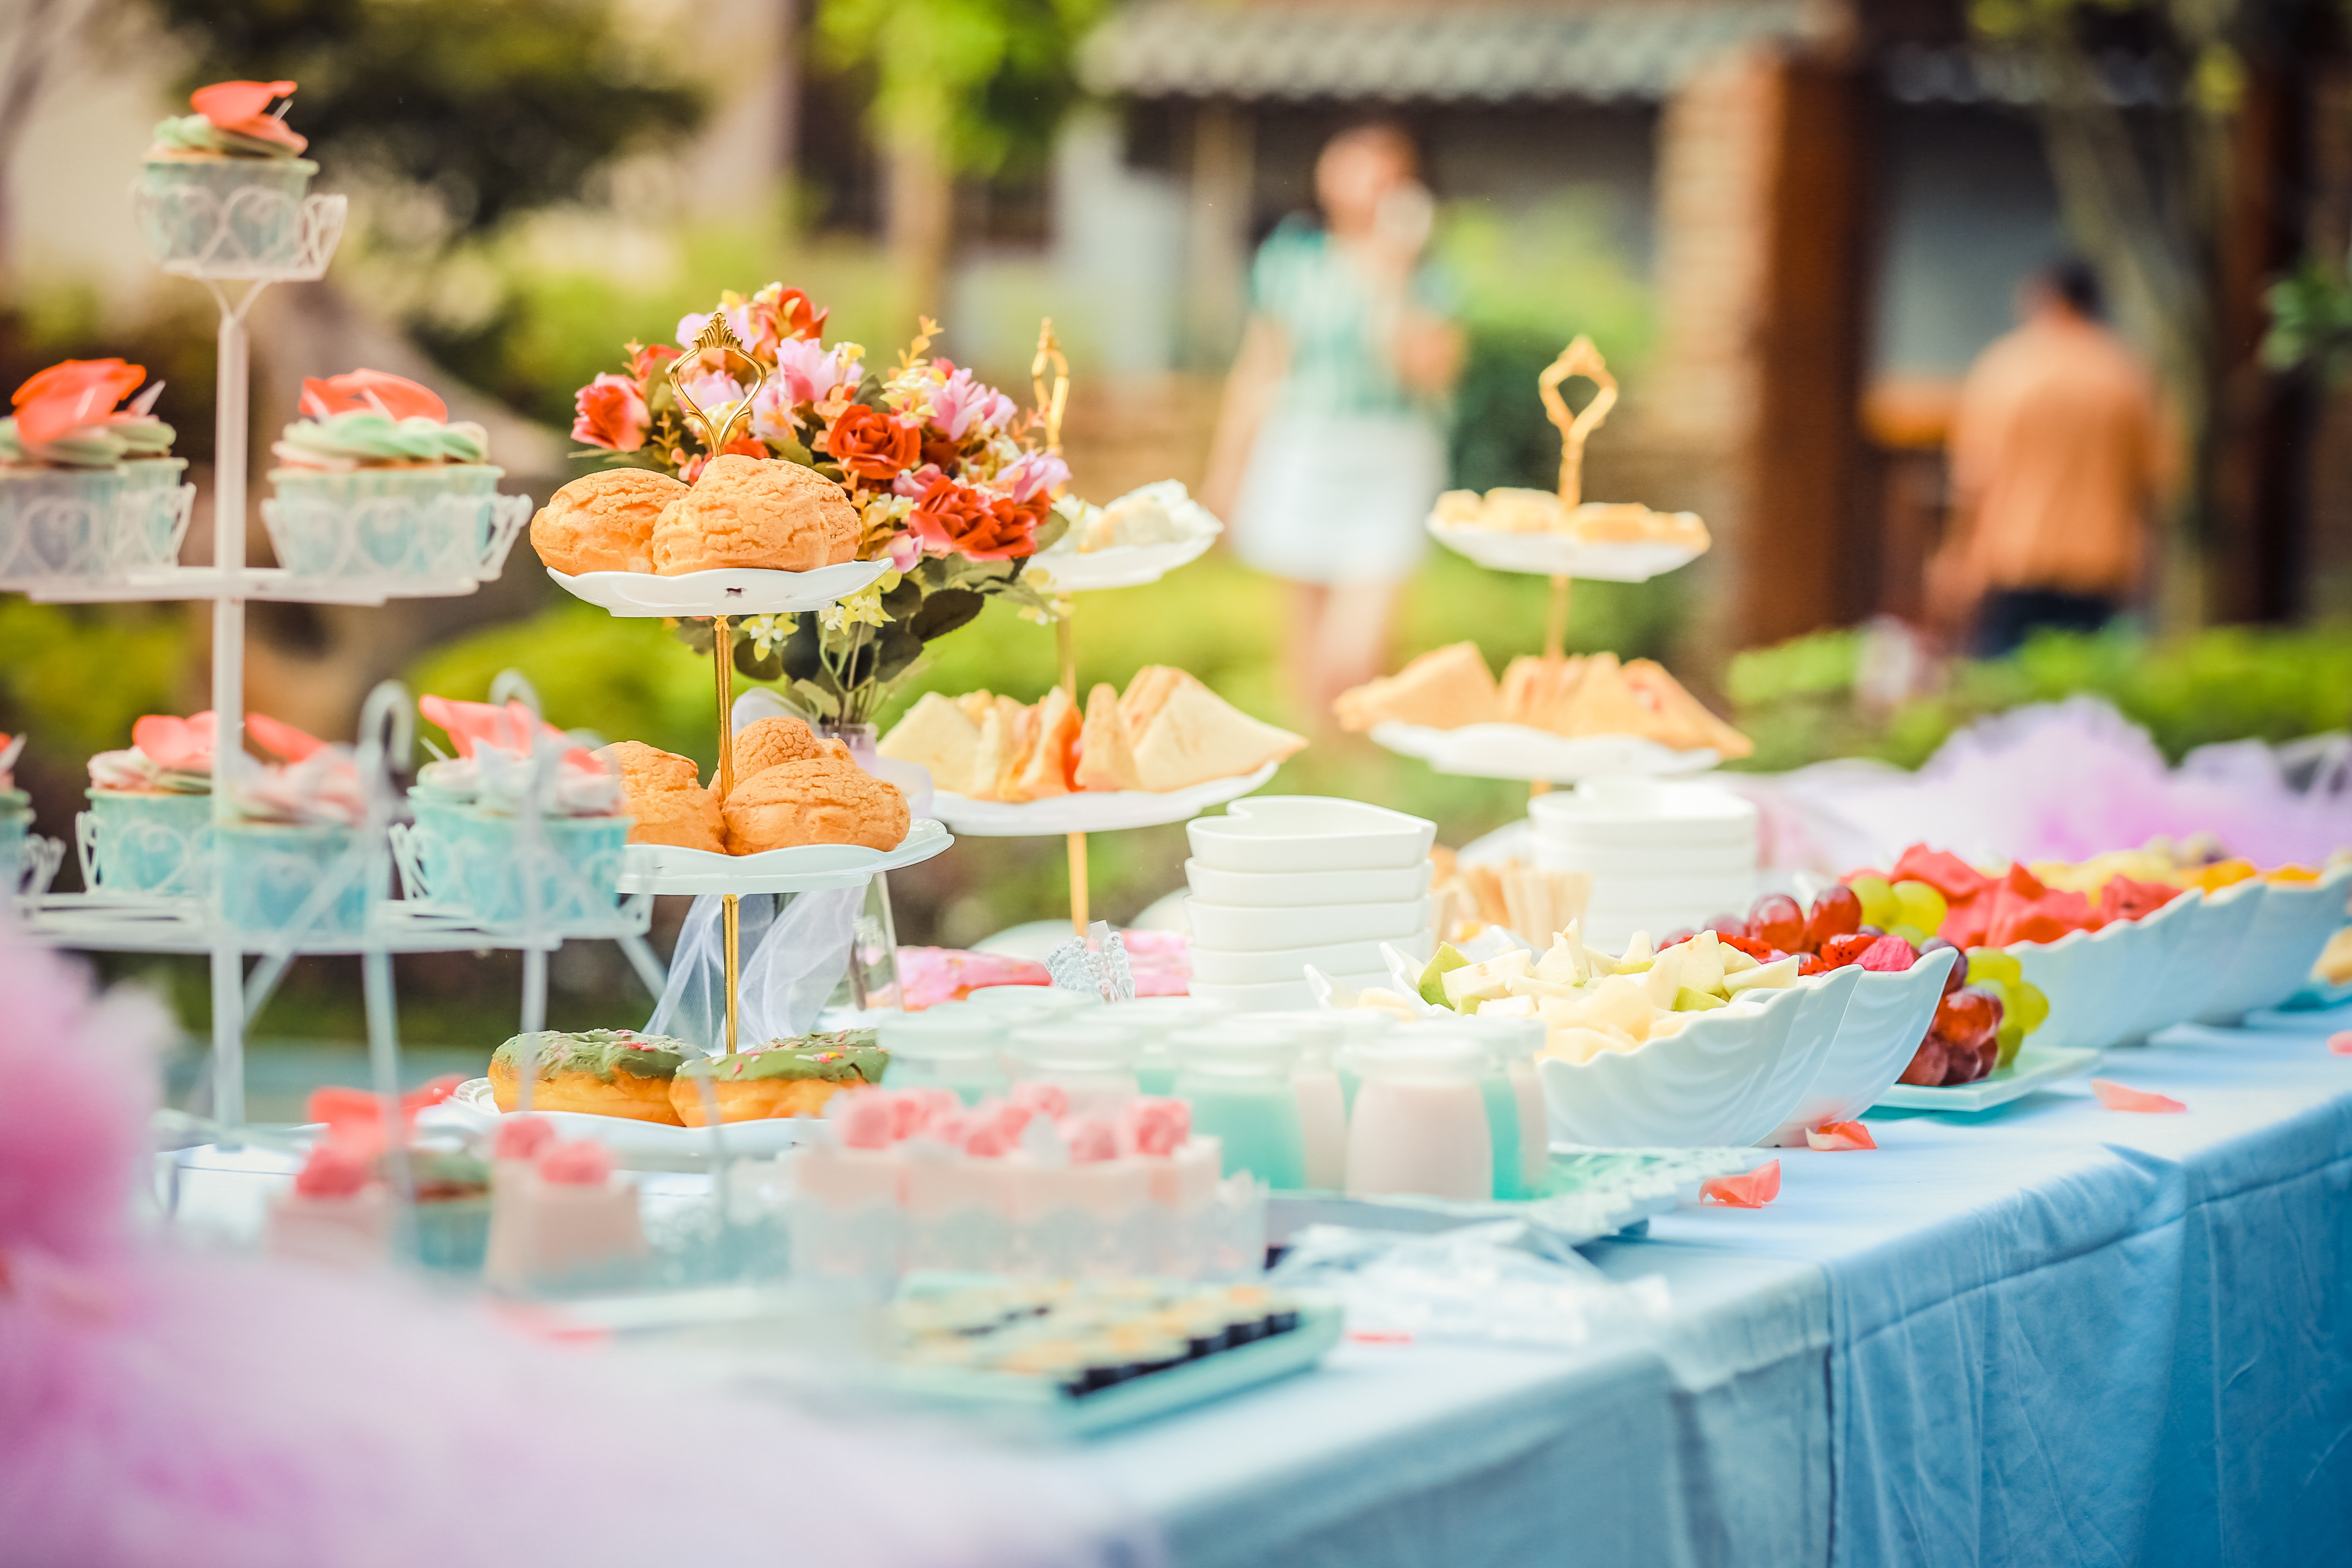 How To Serve Sustainable Food For An Eco-Friendly Party